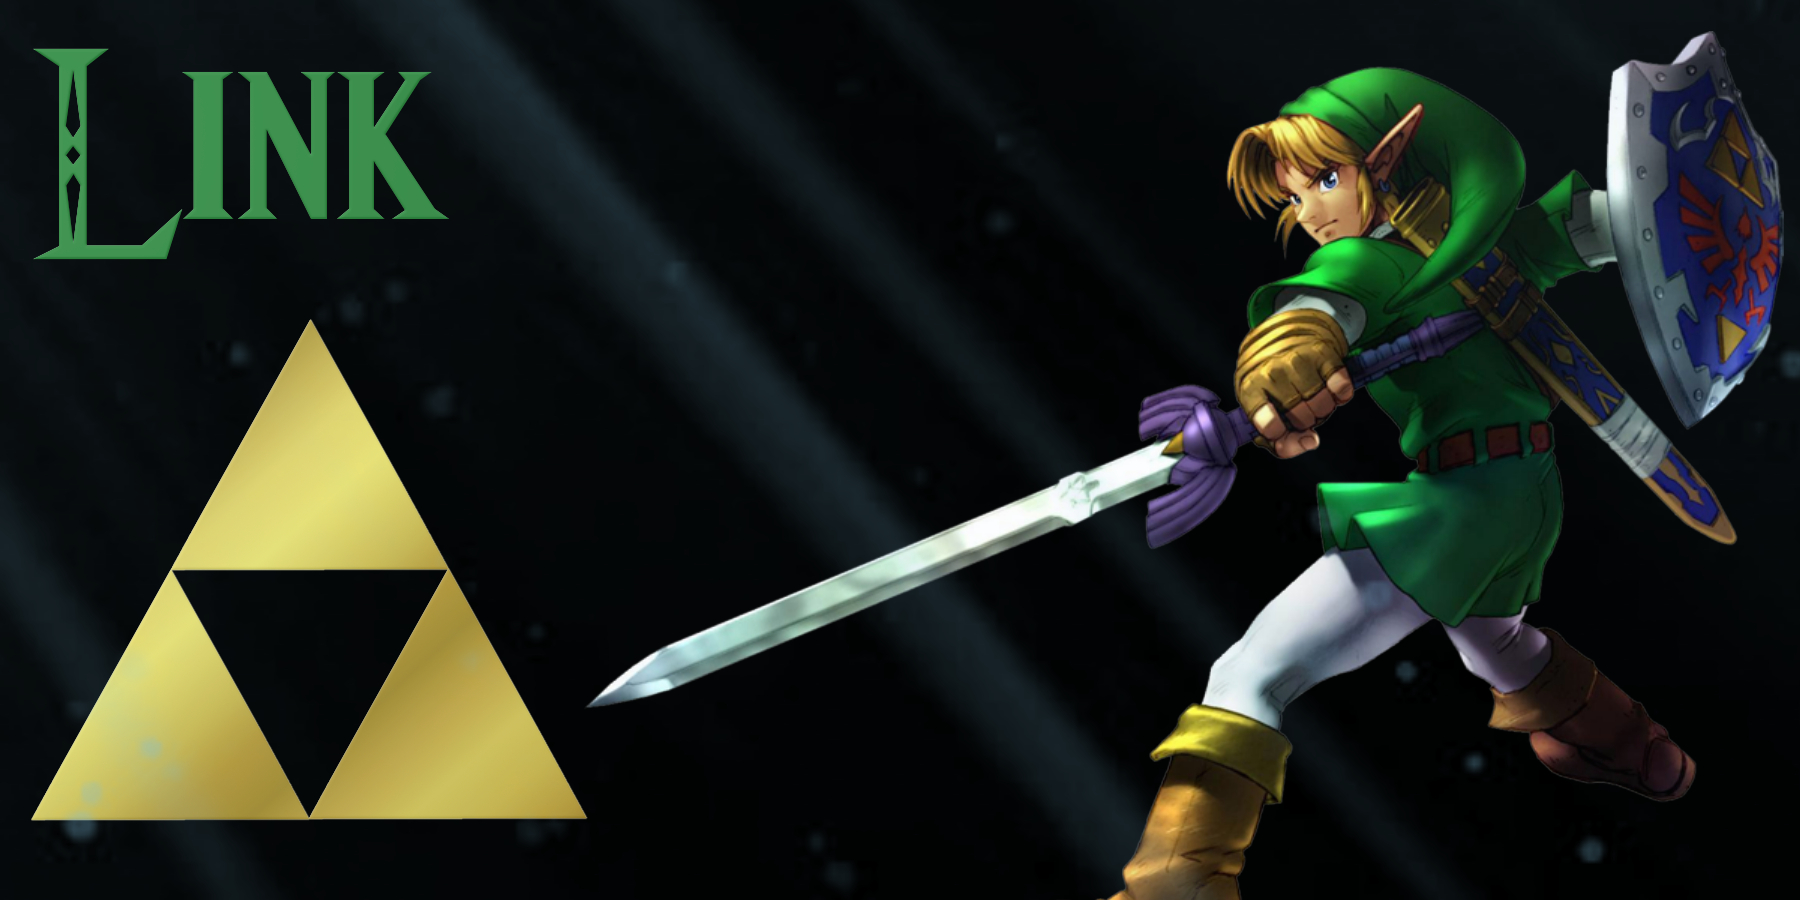 Link wallpaper by MagicalyMade 1800x900